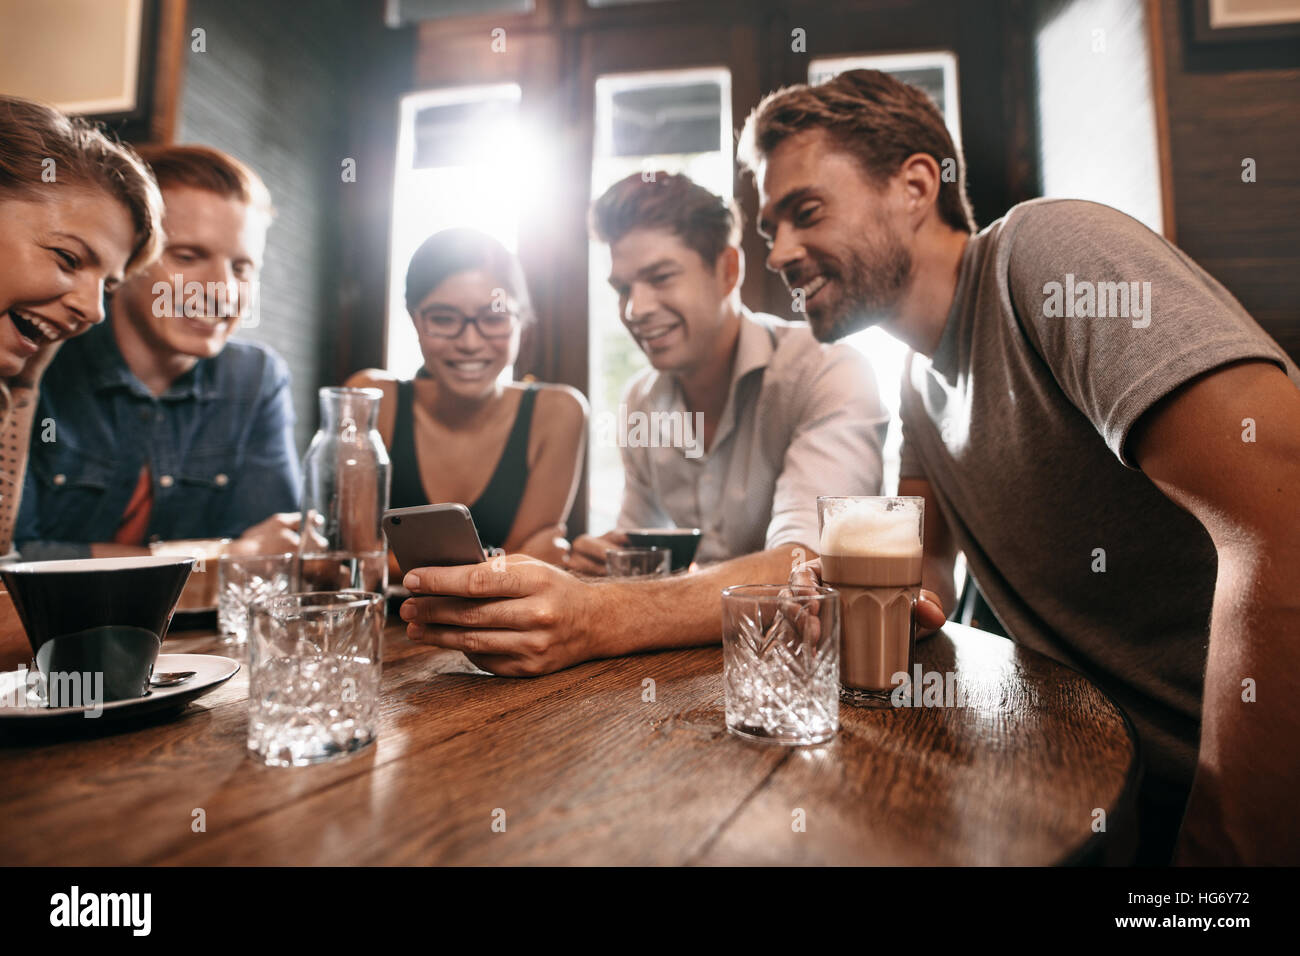 Group of friends sitting around a cafe table and looking at mobile phone. Young men and women looking at pictures - Stock Image